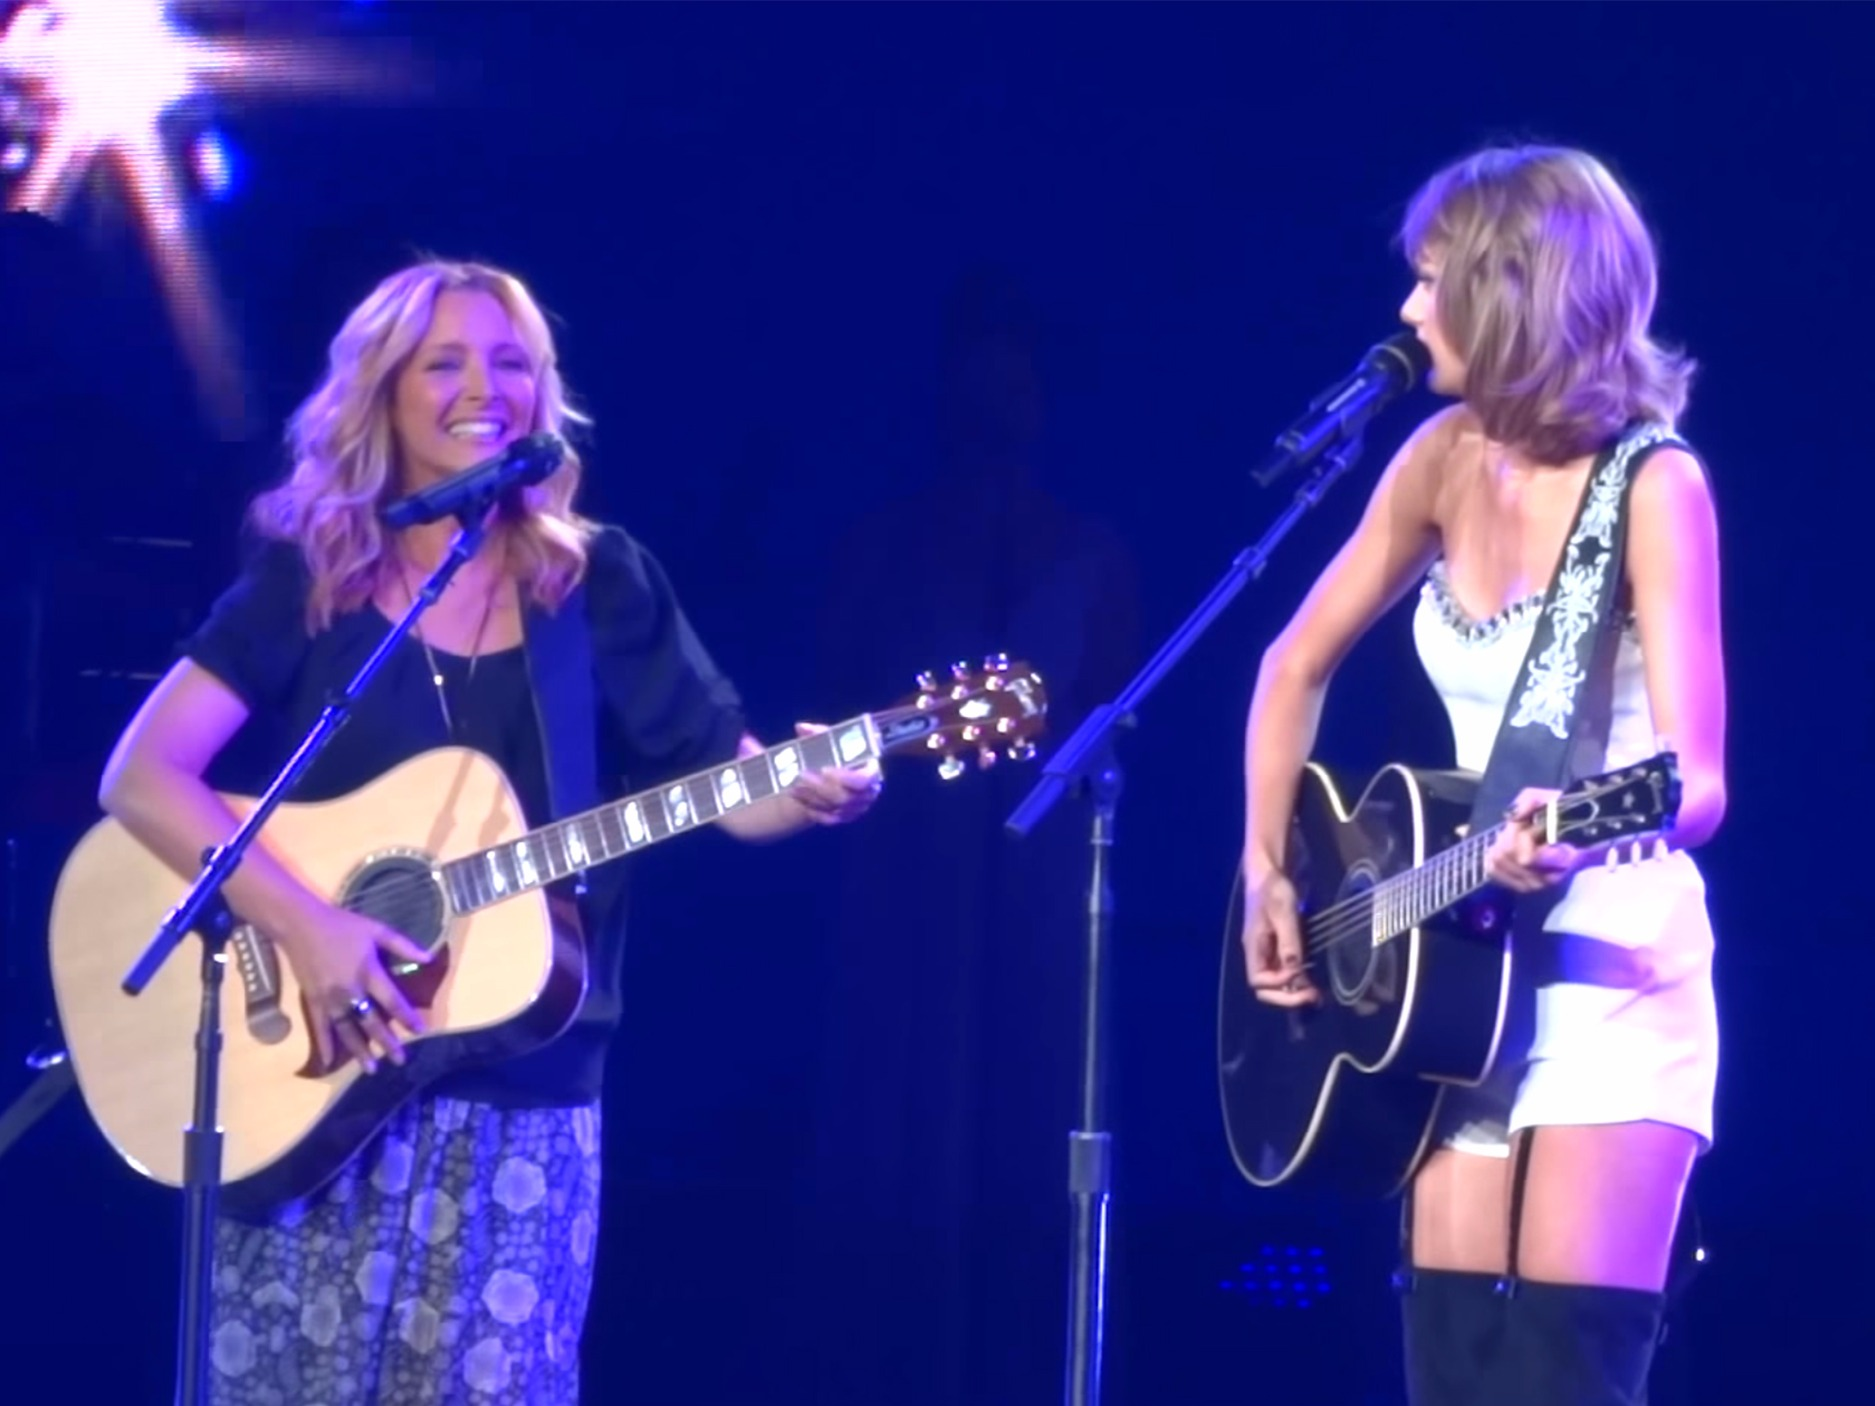 Taylor Swift, Smelly Cat, Phoebe Buffay, F.R.I.E.N.D.S., FRIENDS